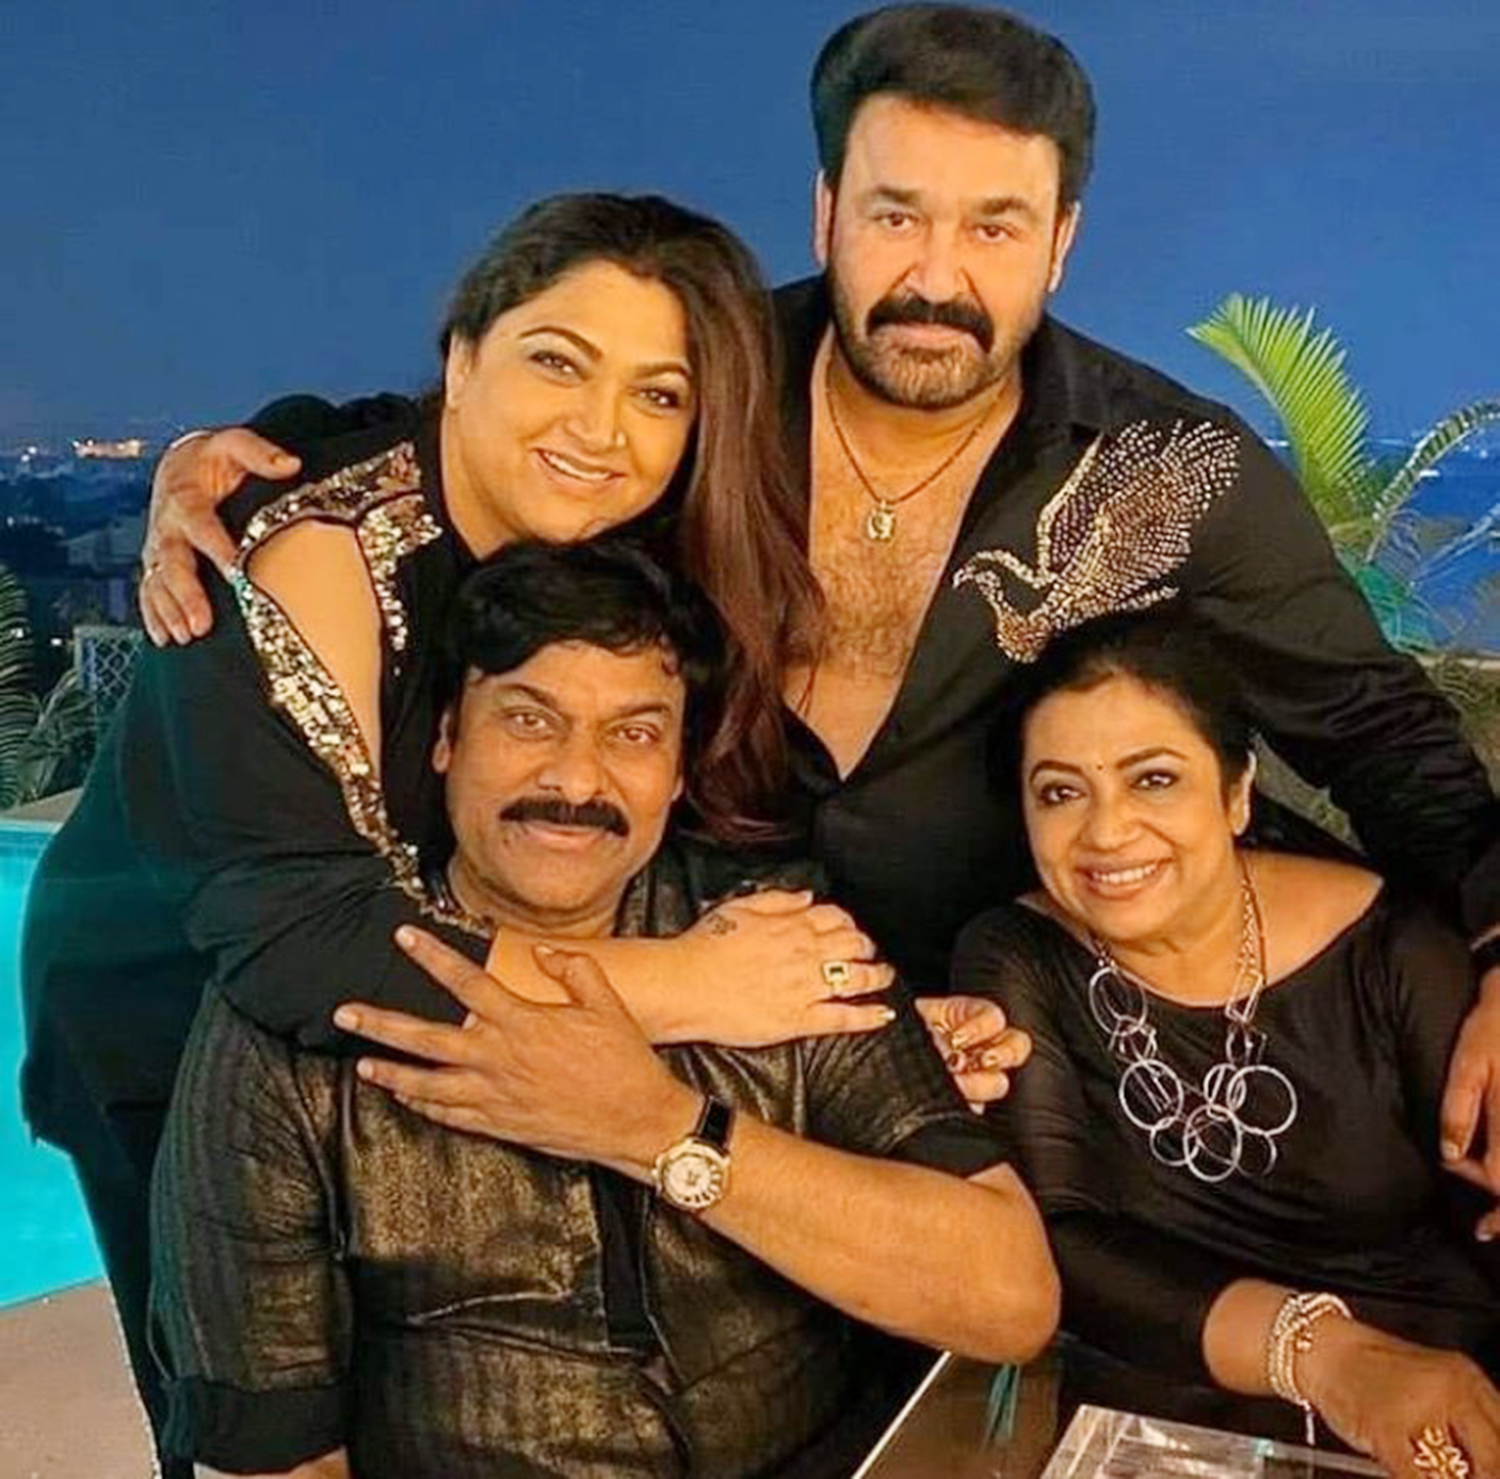 Chiranjeevi ,80's reunion,south indian film 80's reunion,80's stars reunion,80's reunion images,mohanlal chiranjeevi pics from 80's reunion,80's reunion party images